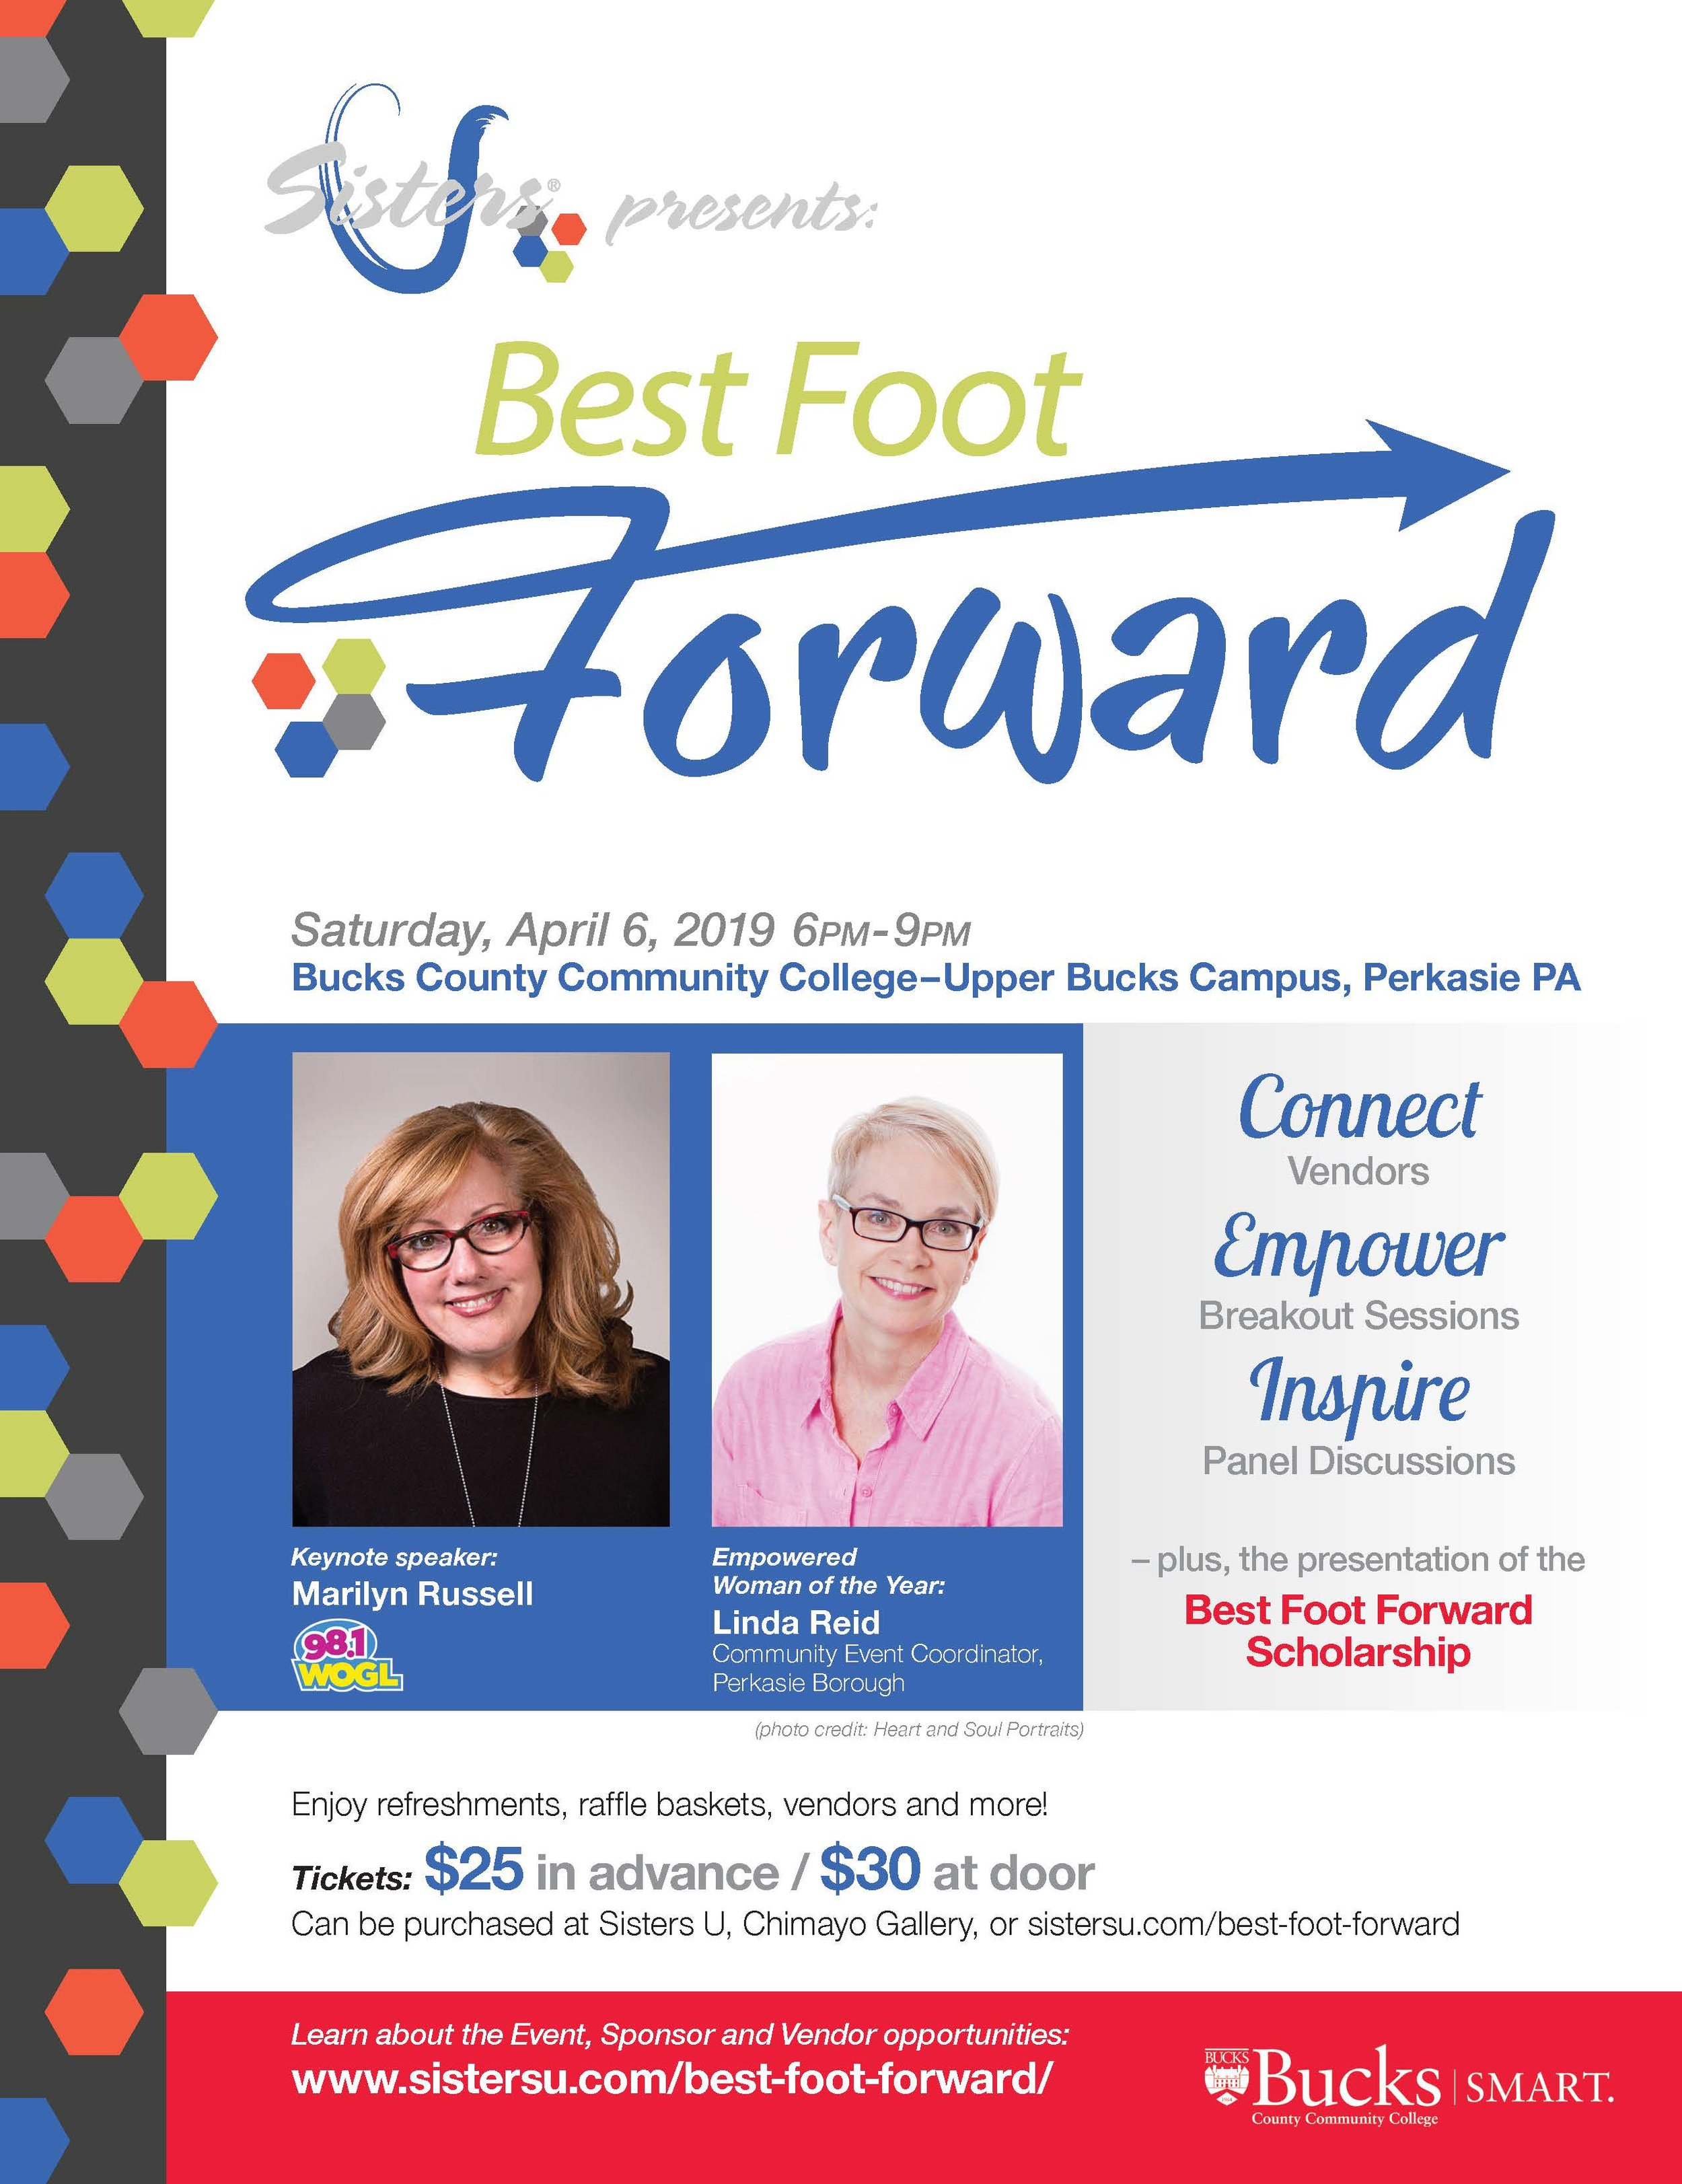 Sisters U Best Foot Forward Flyer 2019_FINAL.jpg